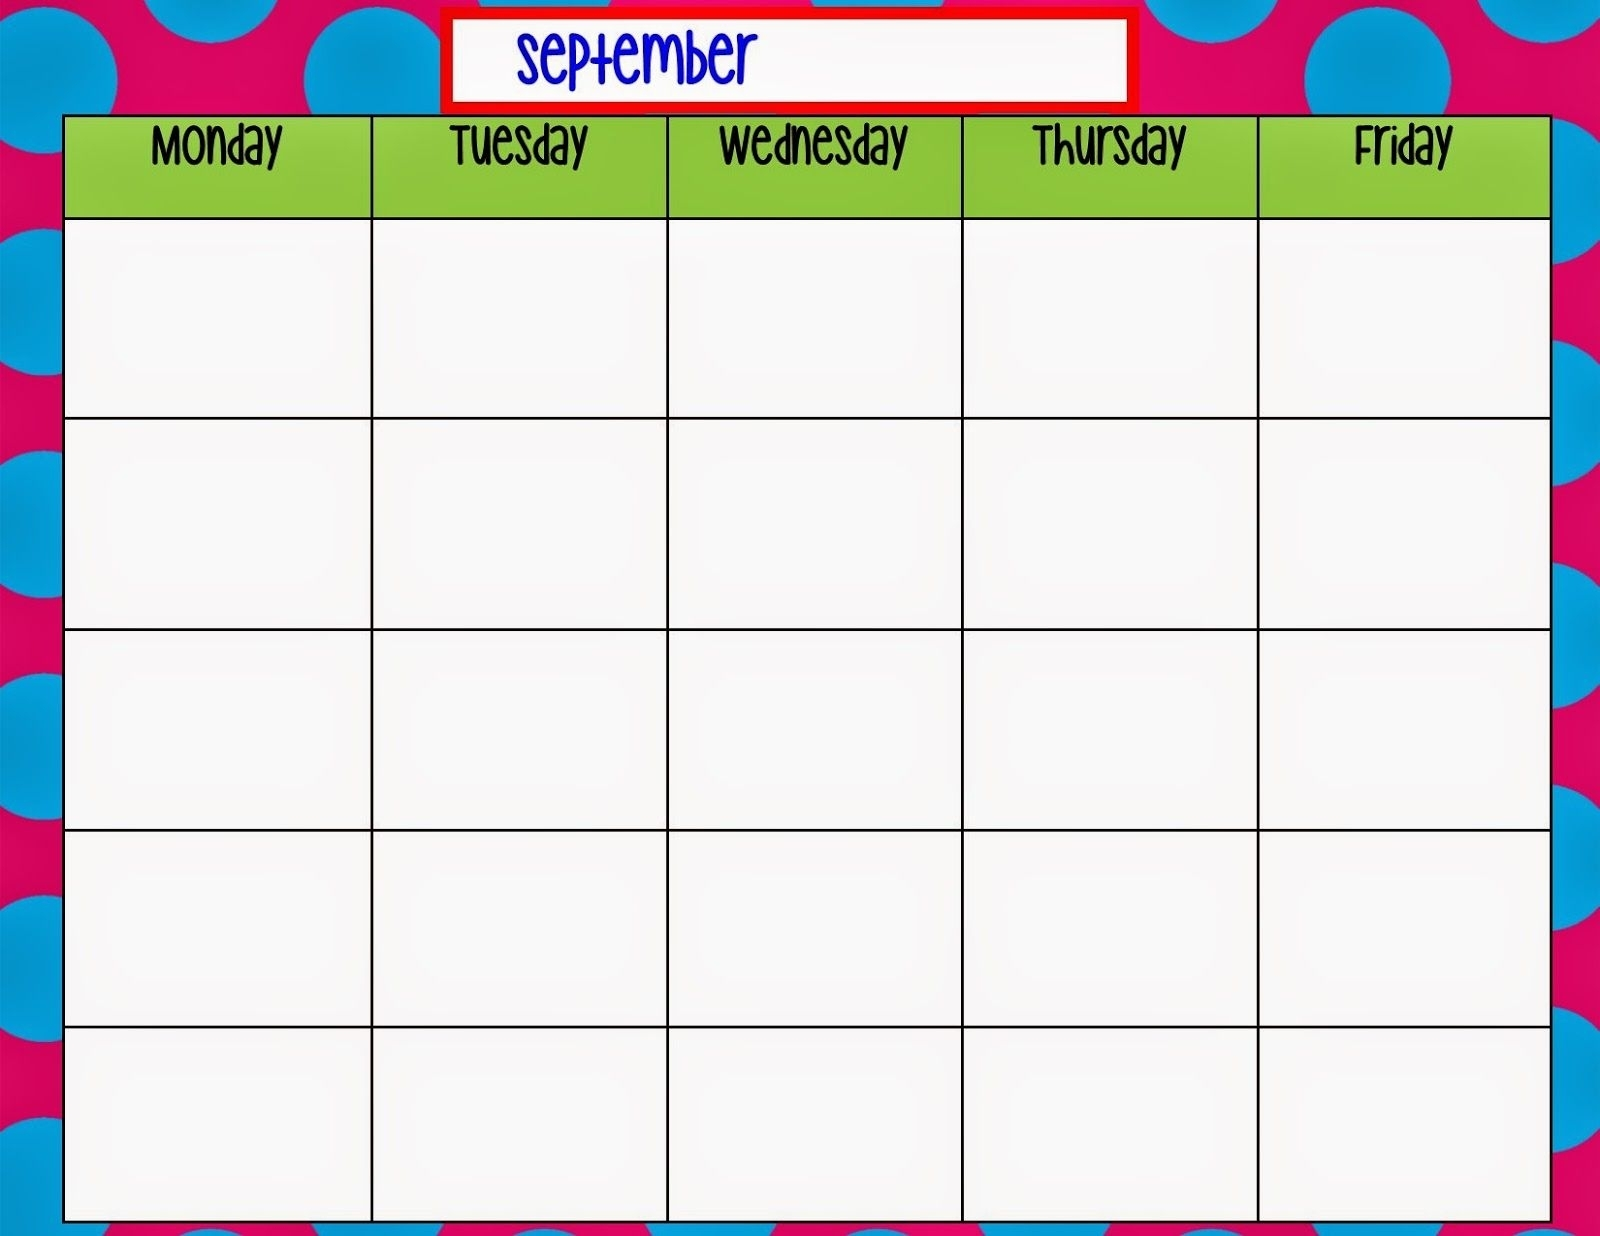 Monday Through Friday Calendar Template | Weekly Calendar intended for Printable To Do Monday To Friday